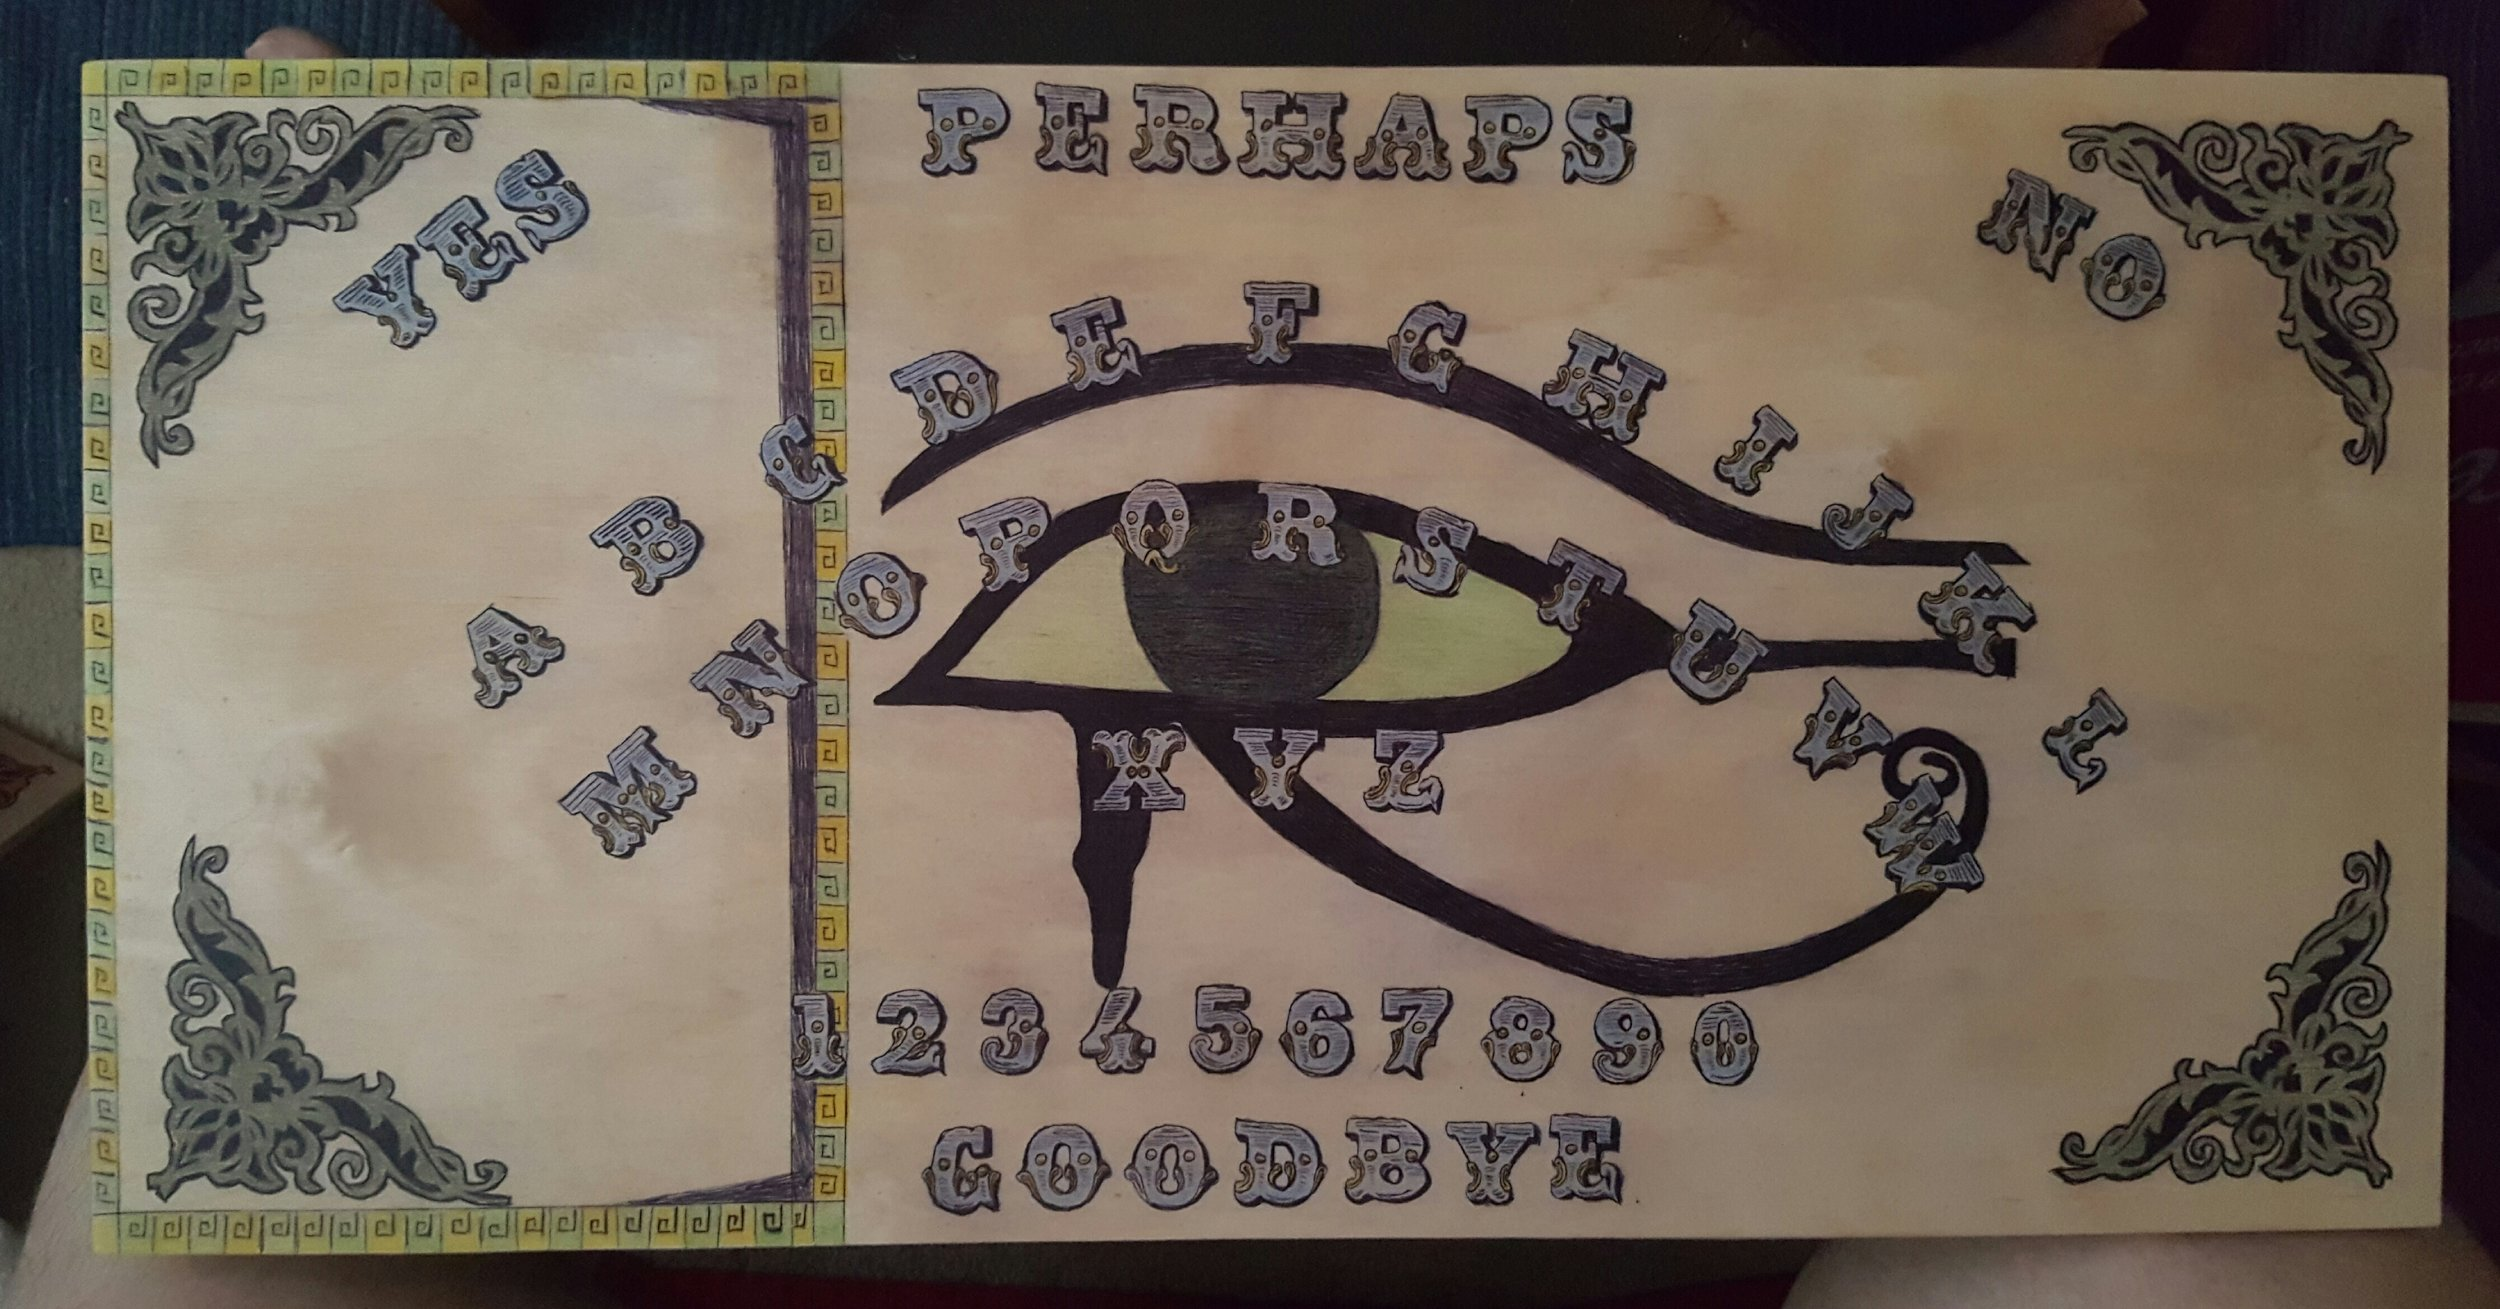 The Egyptian Portal Talking Board created by Lana Carbon